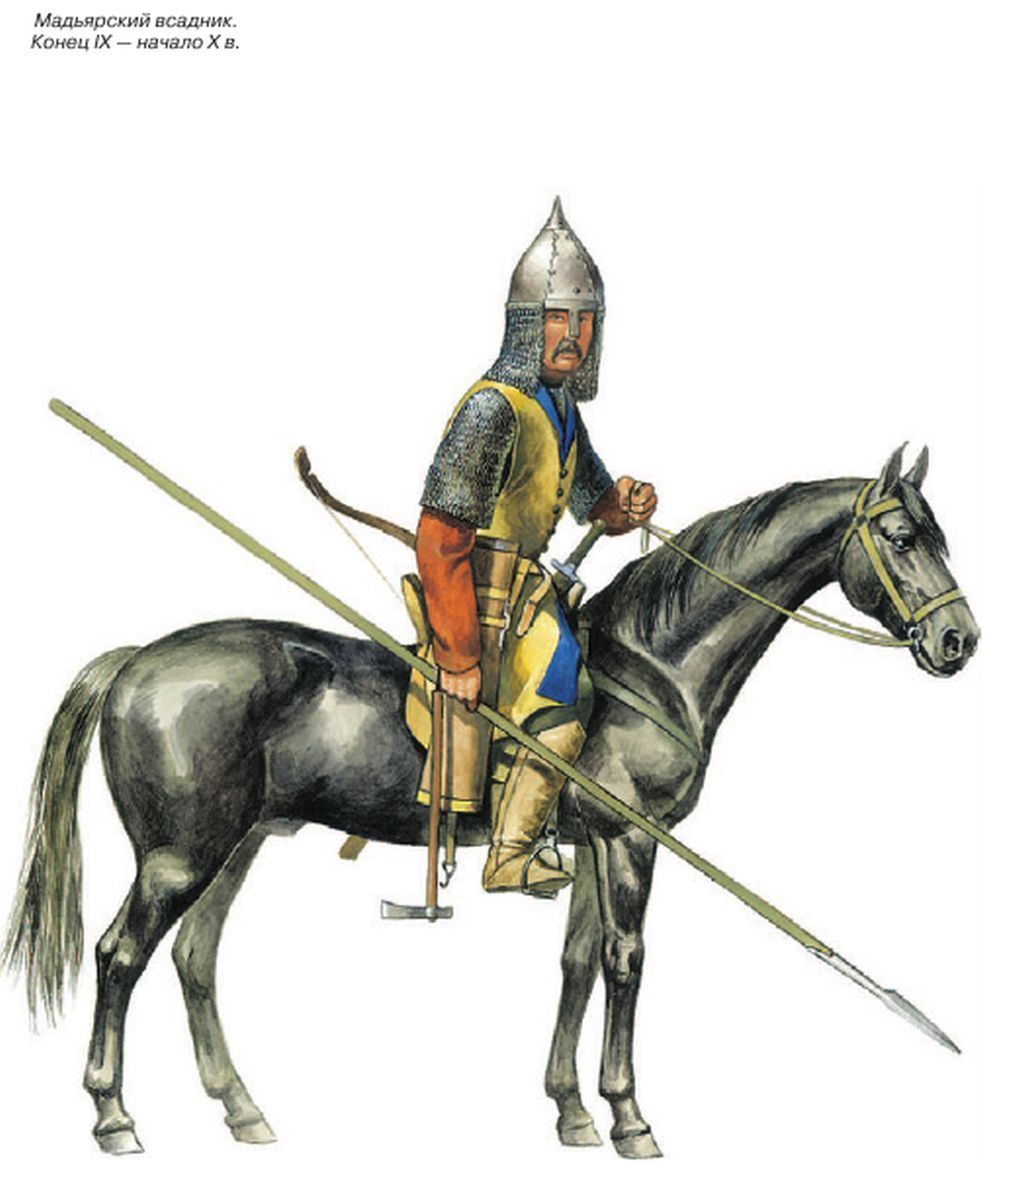 Magyar cavalryman, end of 9th century/ beginn of 10th ...